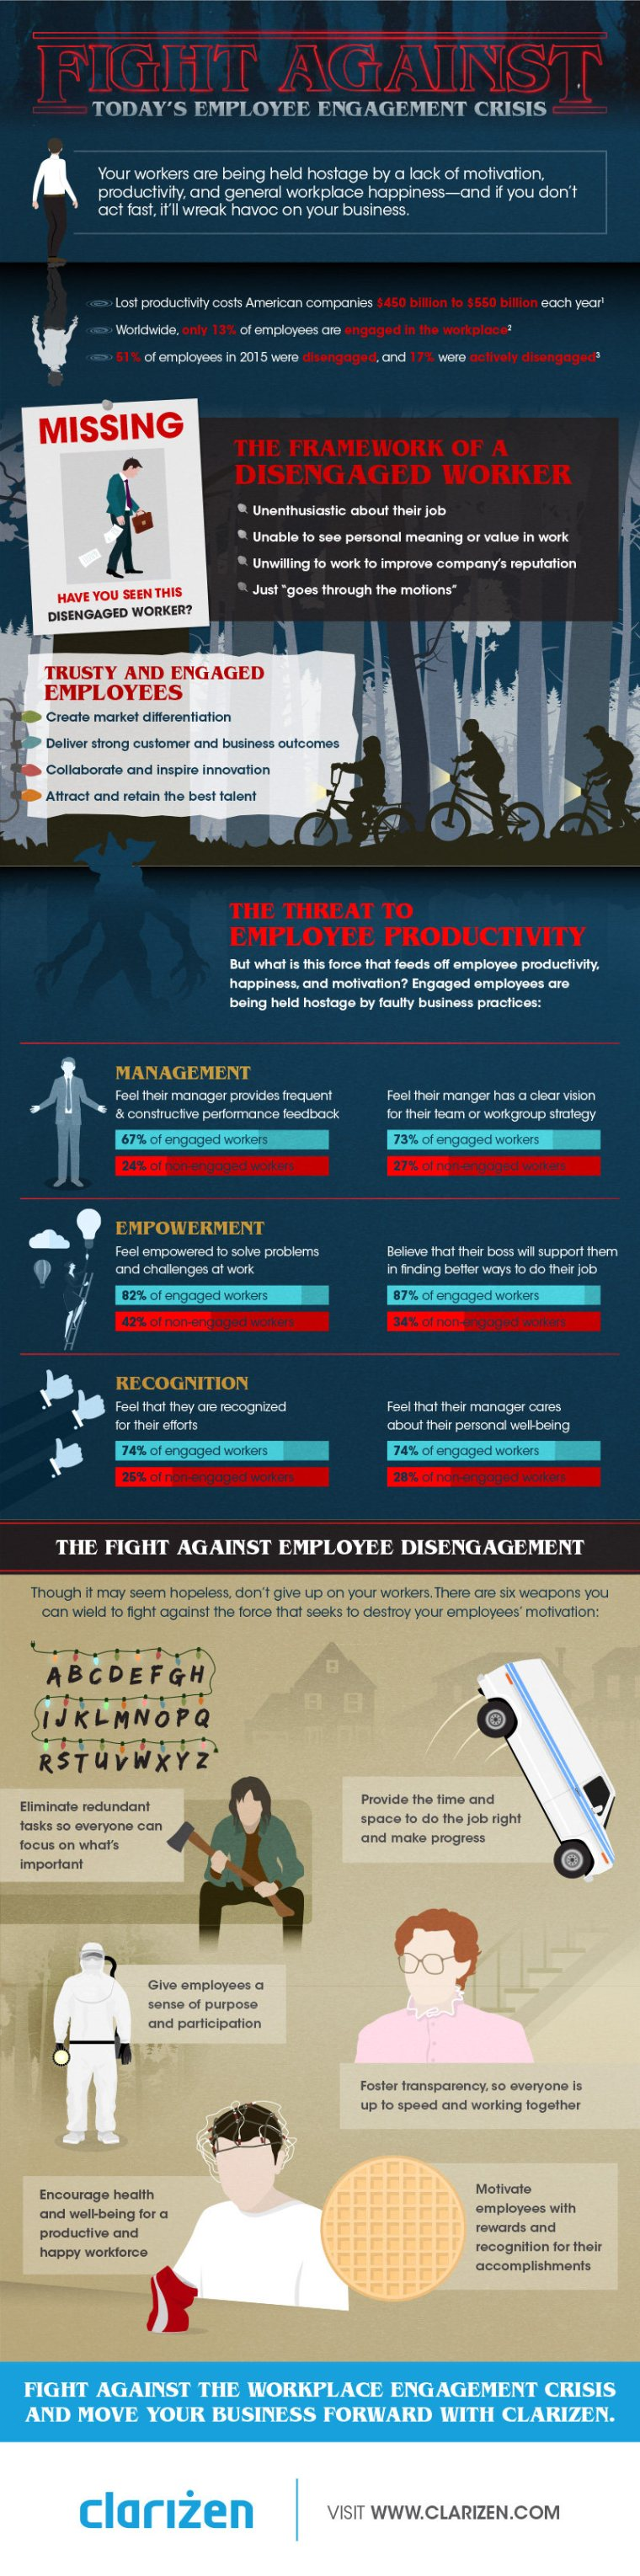 Employee engagement crisis - infographic by Clarizen